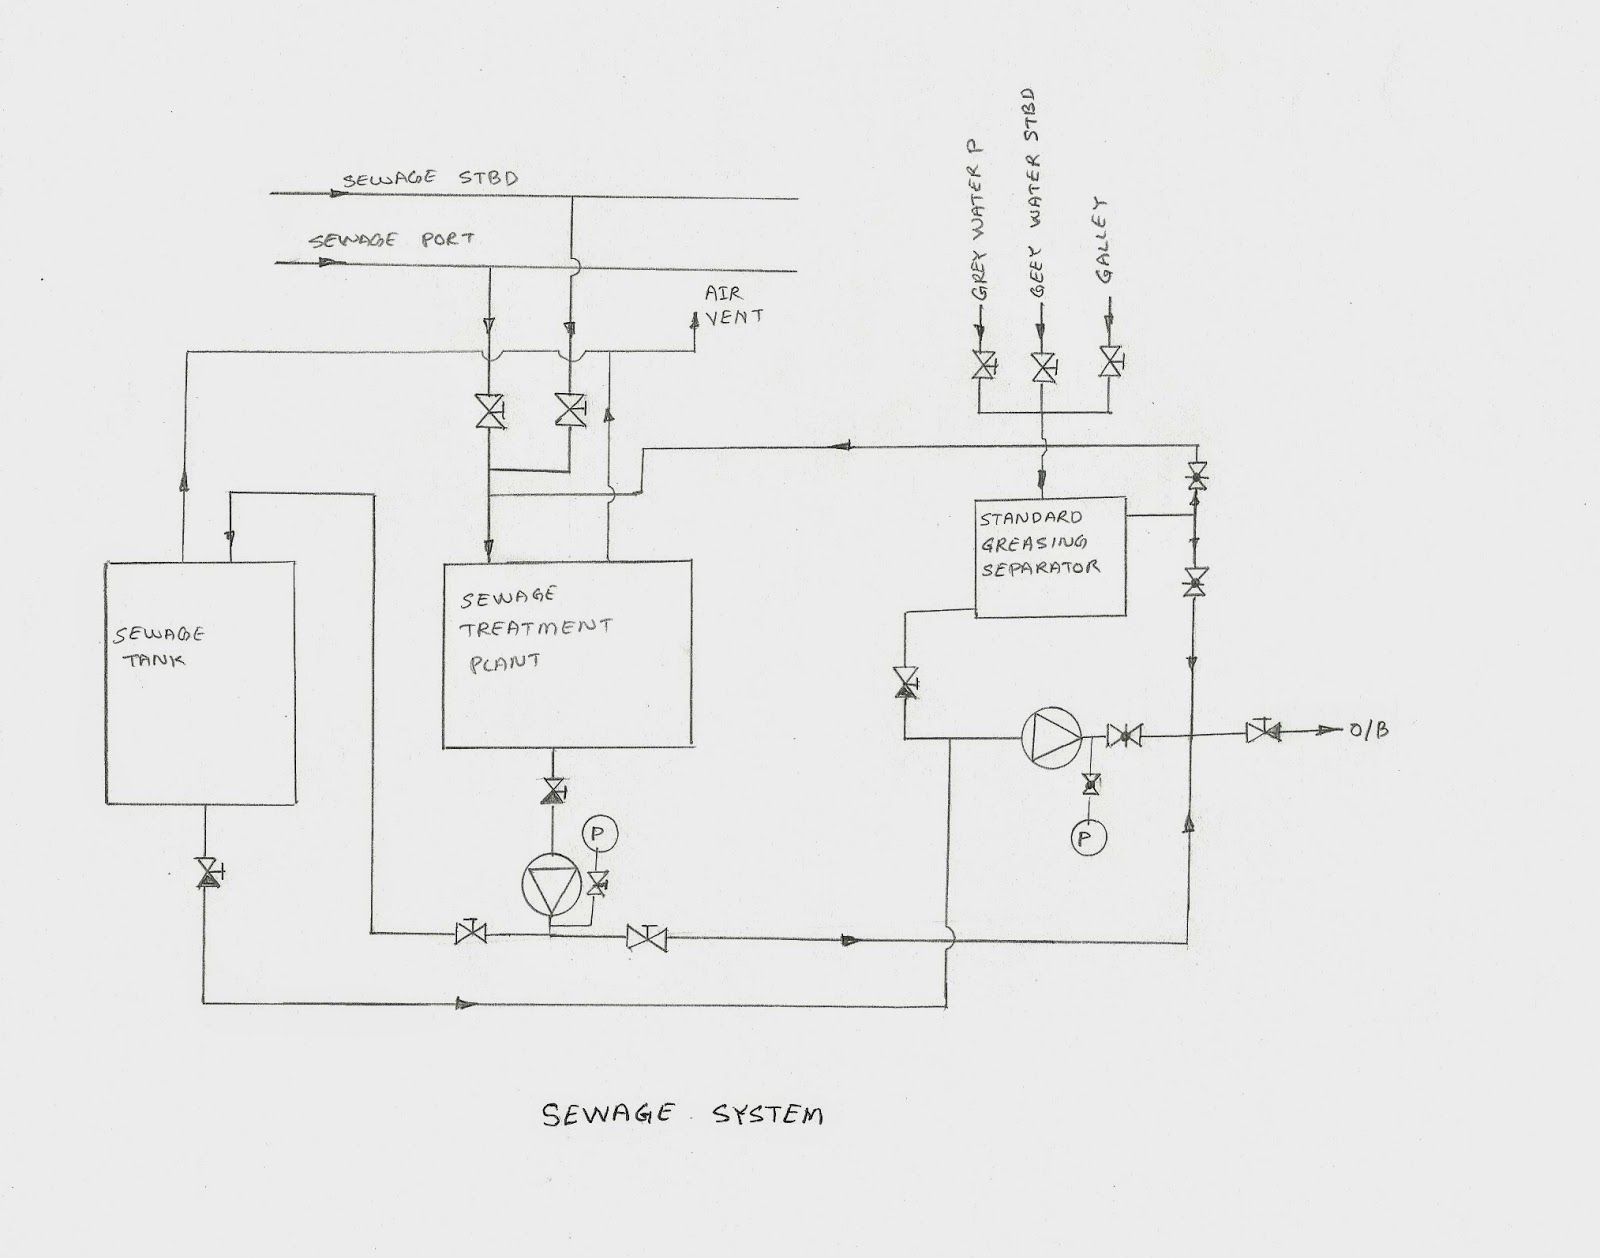 Basic Line Diagram Of Engine Room For Junior Engineer And